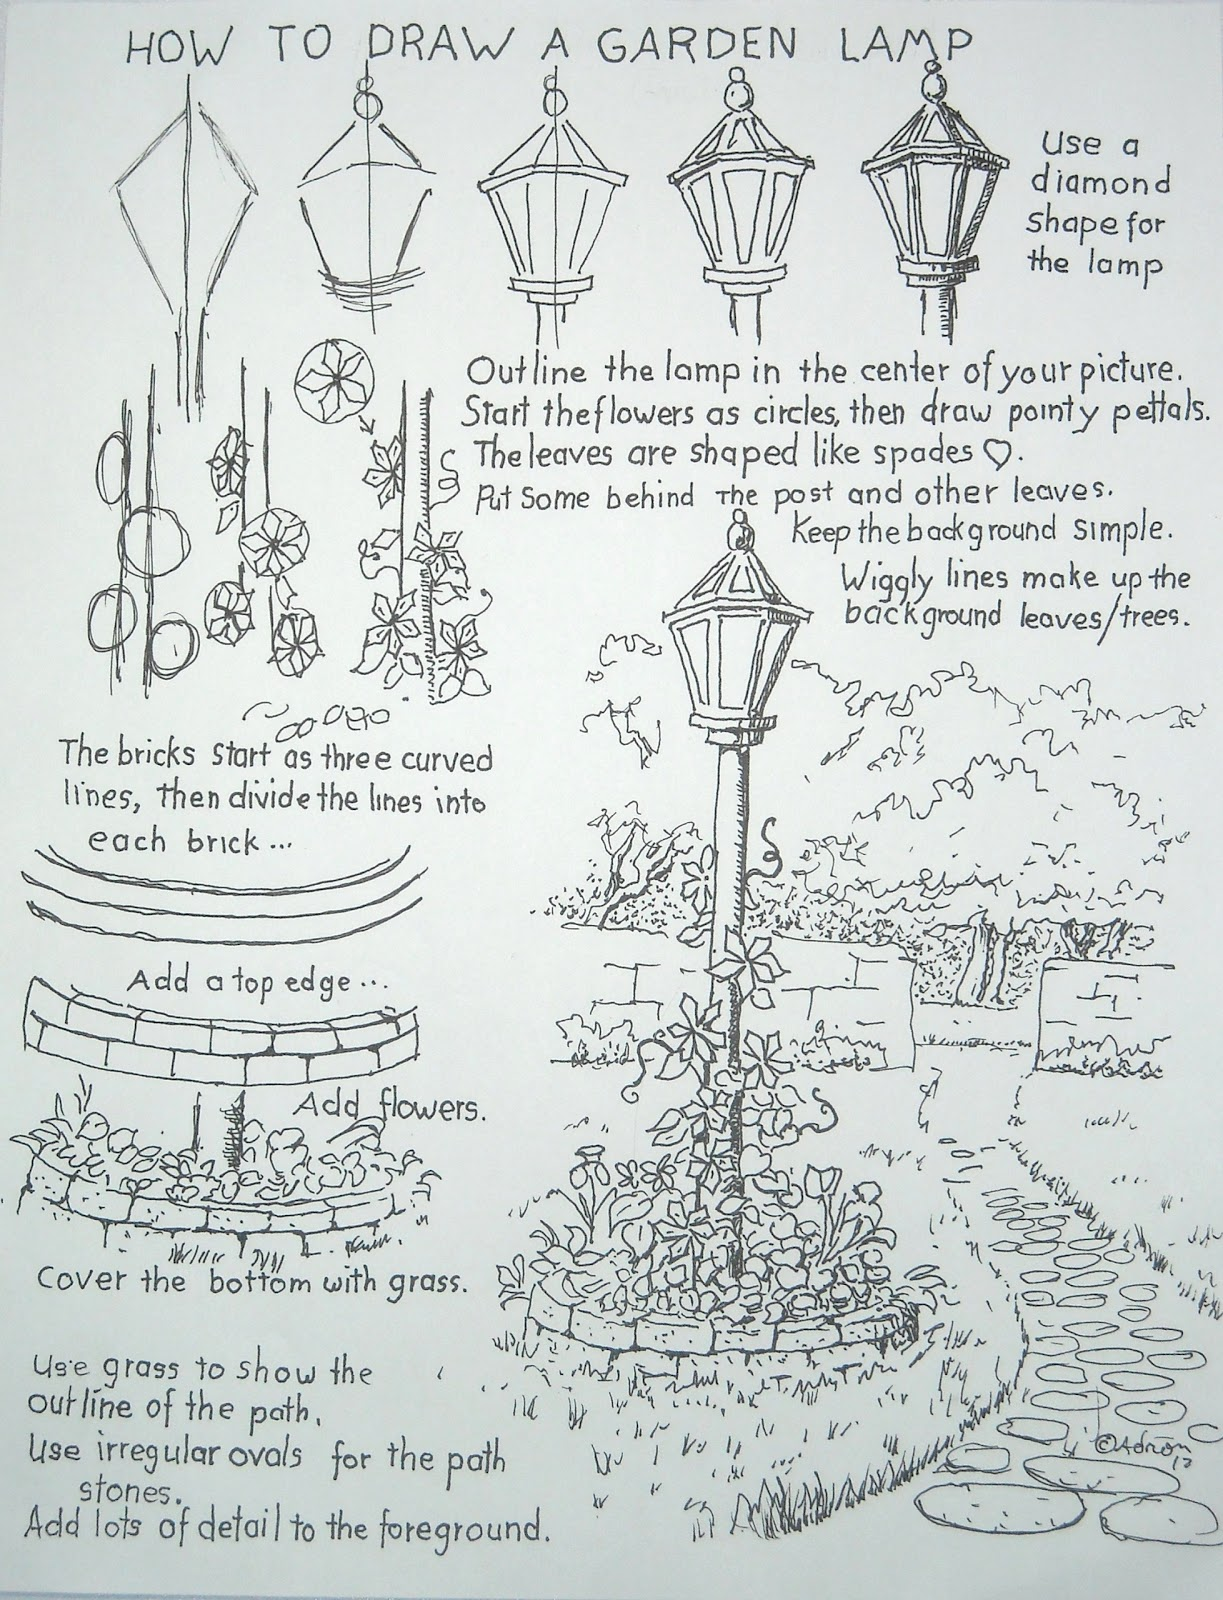 How To Draw A Garden Lamp Post